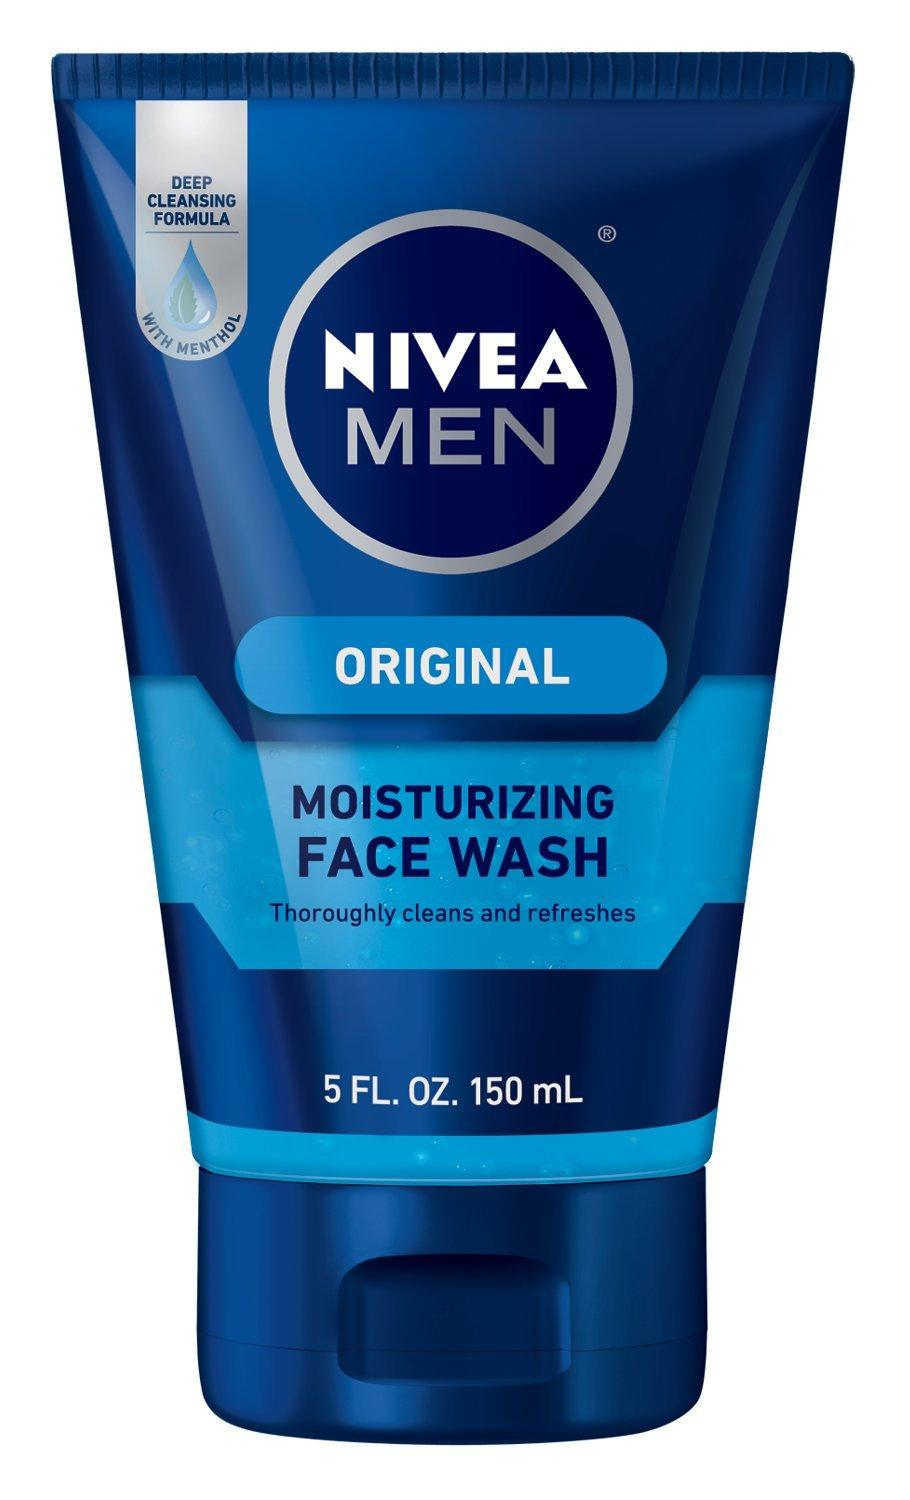 NIVEA MEN Original Moisturizing Face Wash, 5 oz Tube